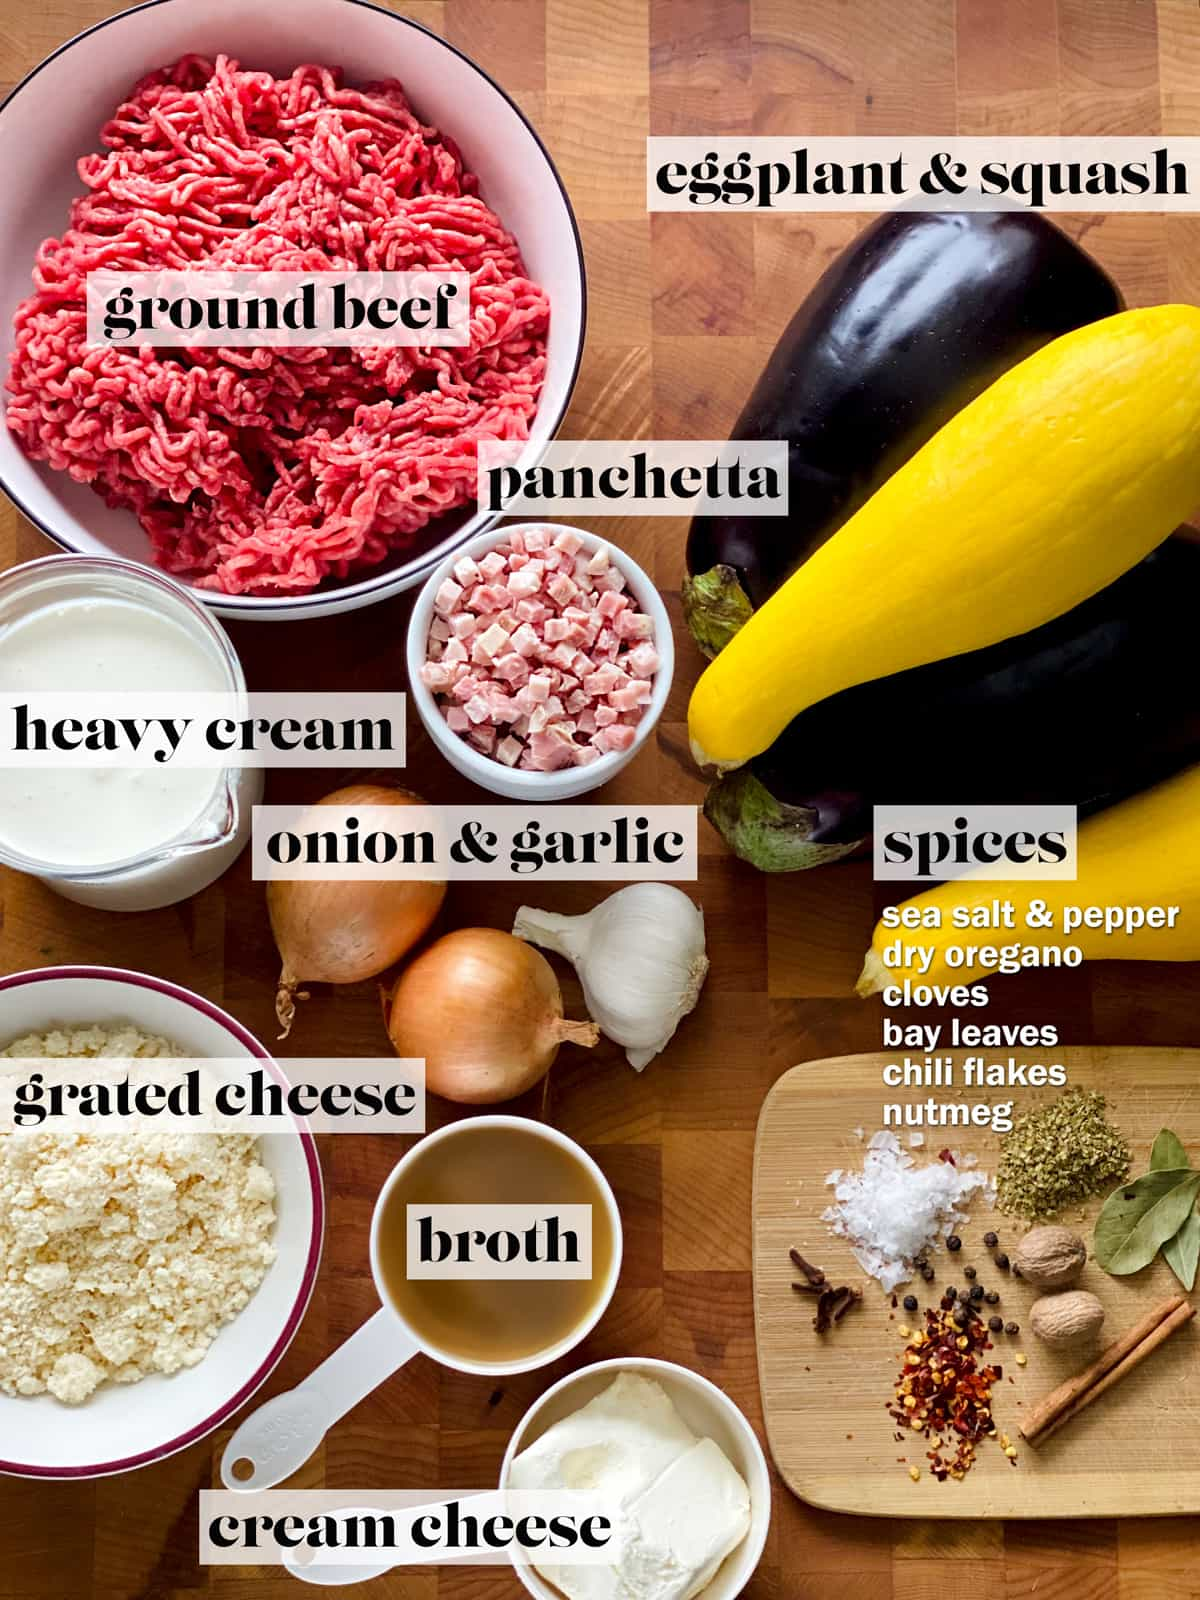 Ingredients for keto moussaka. Ground beef, eggplants, yellow squash, a bowl with cubed pancetta, a bowl with heavy cream, a bowl with cheese, a cup of broth, a cup of cream cheese and a small cutting board with spices, all on a butcher block.